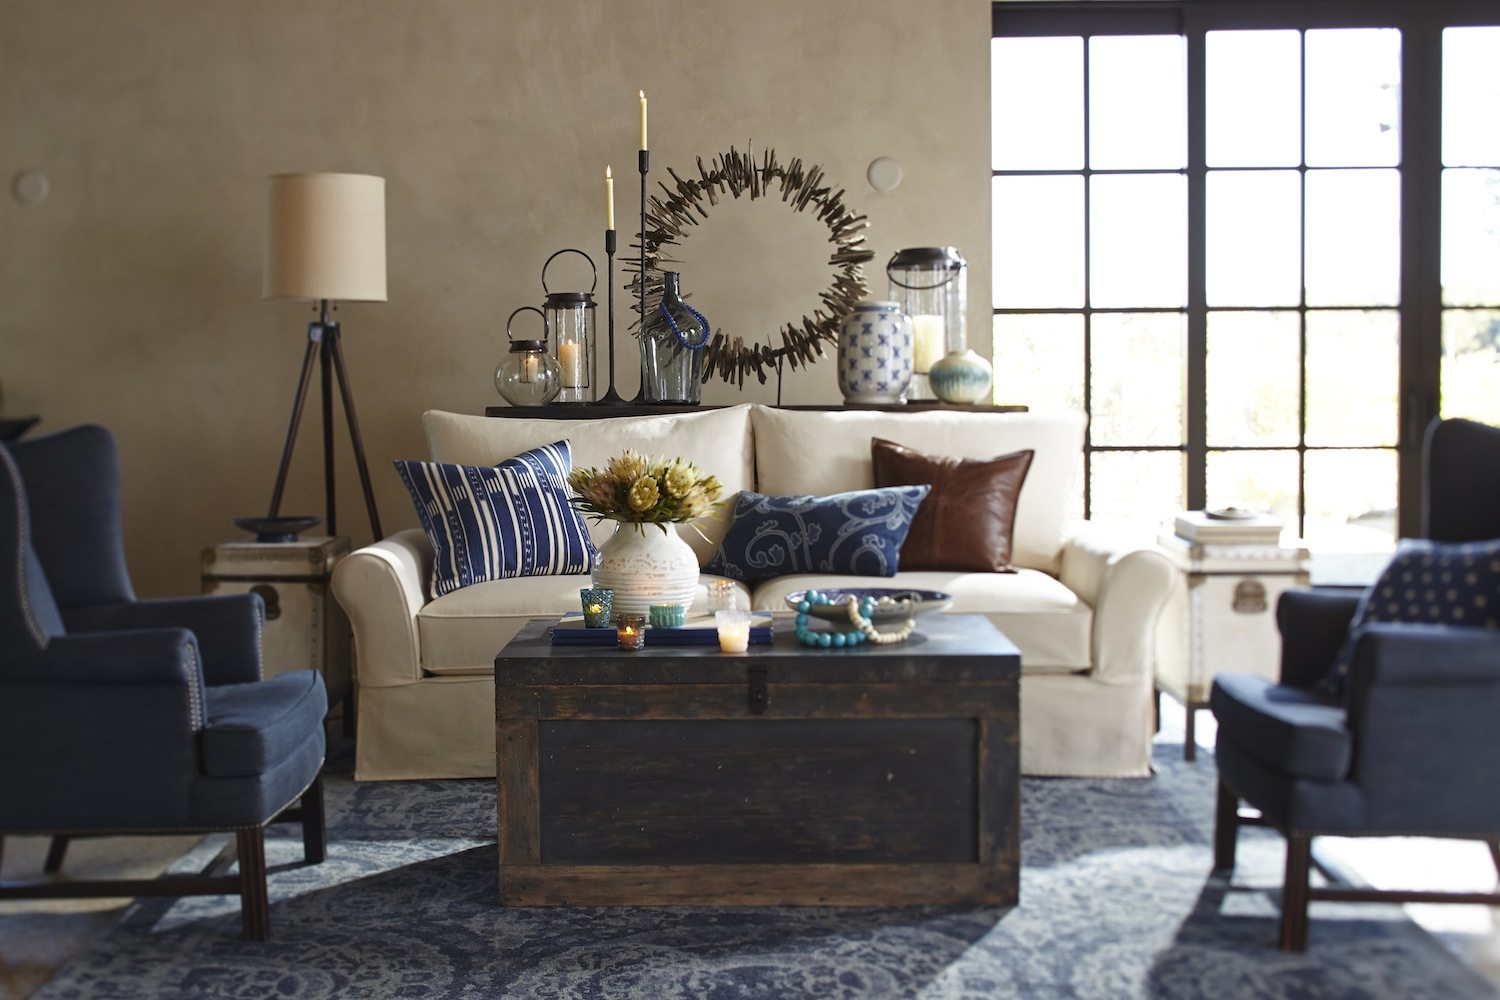 Couches Promotion 30 Off Pottery Barn Coupons Promo Codes May 2019